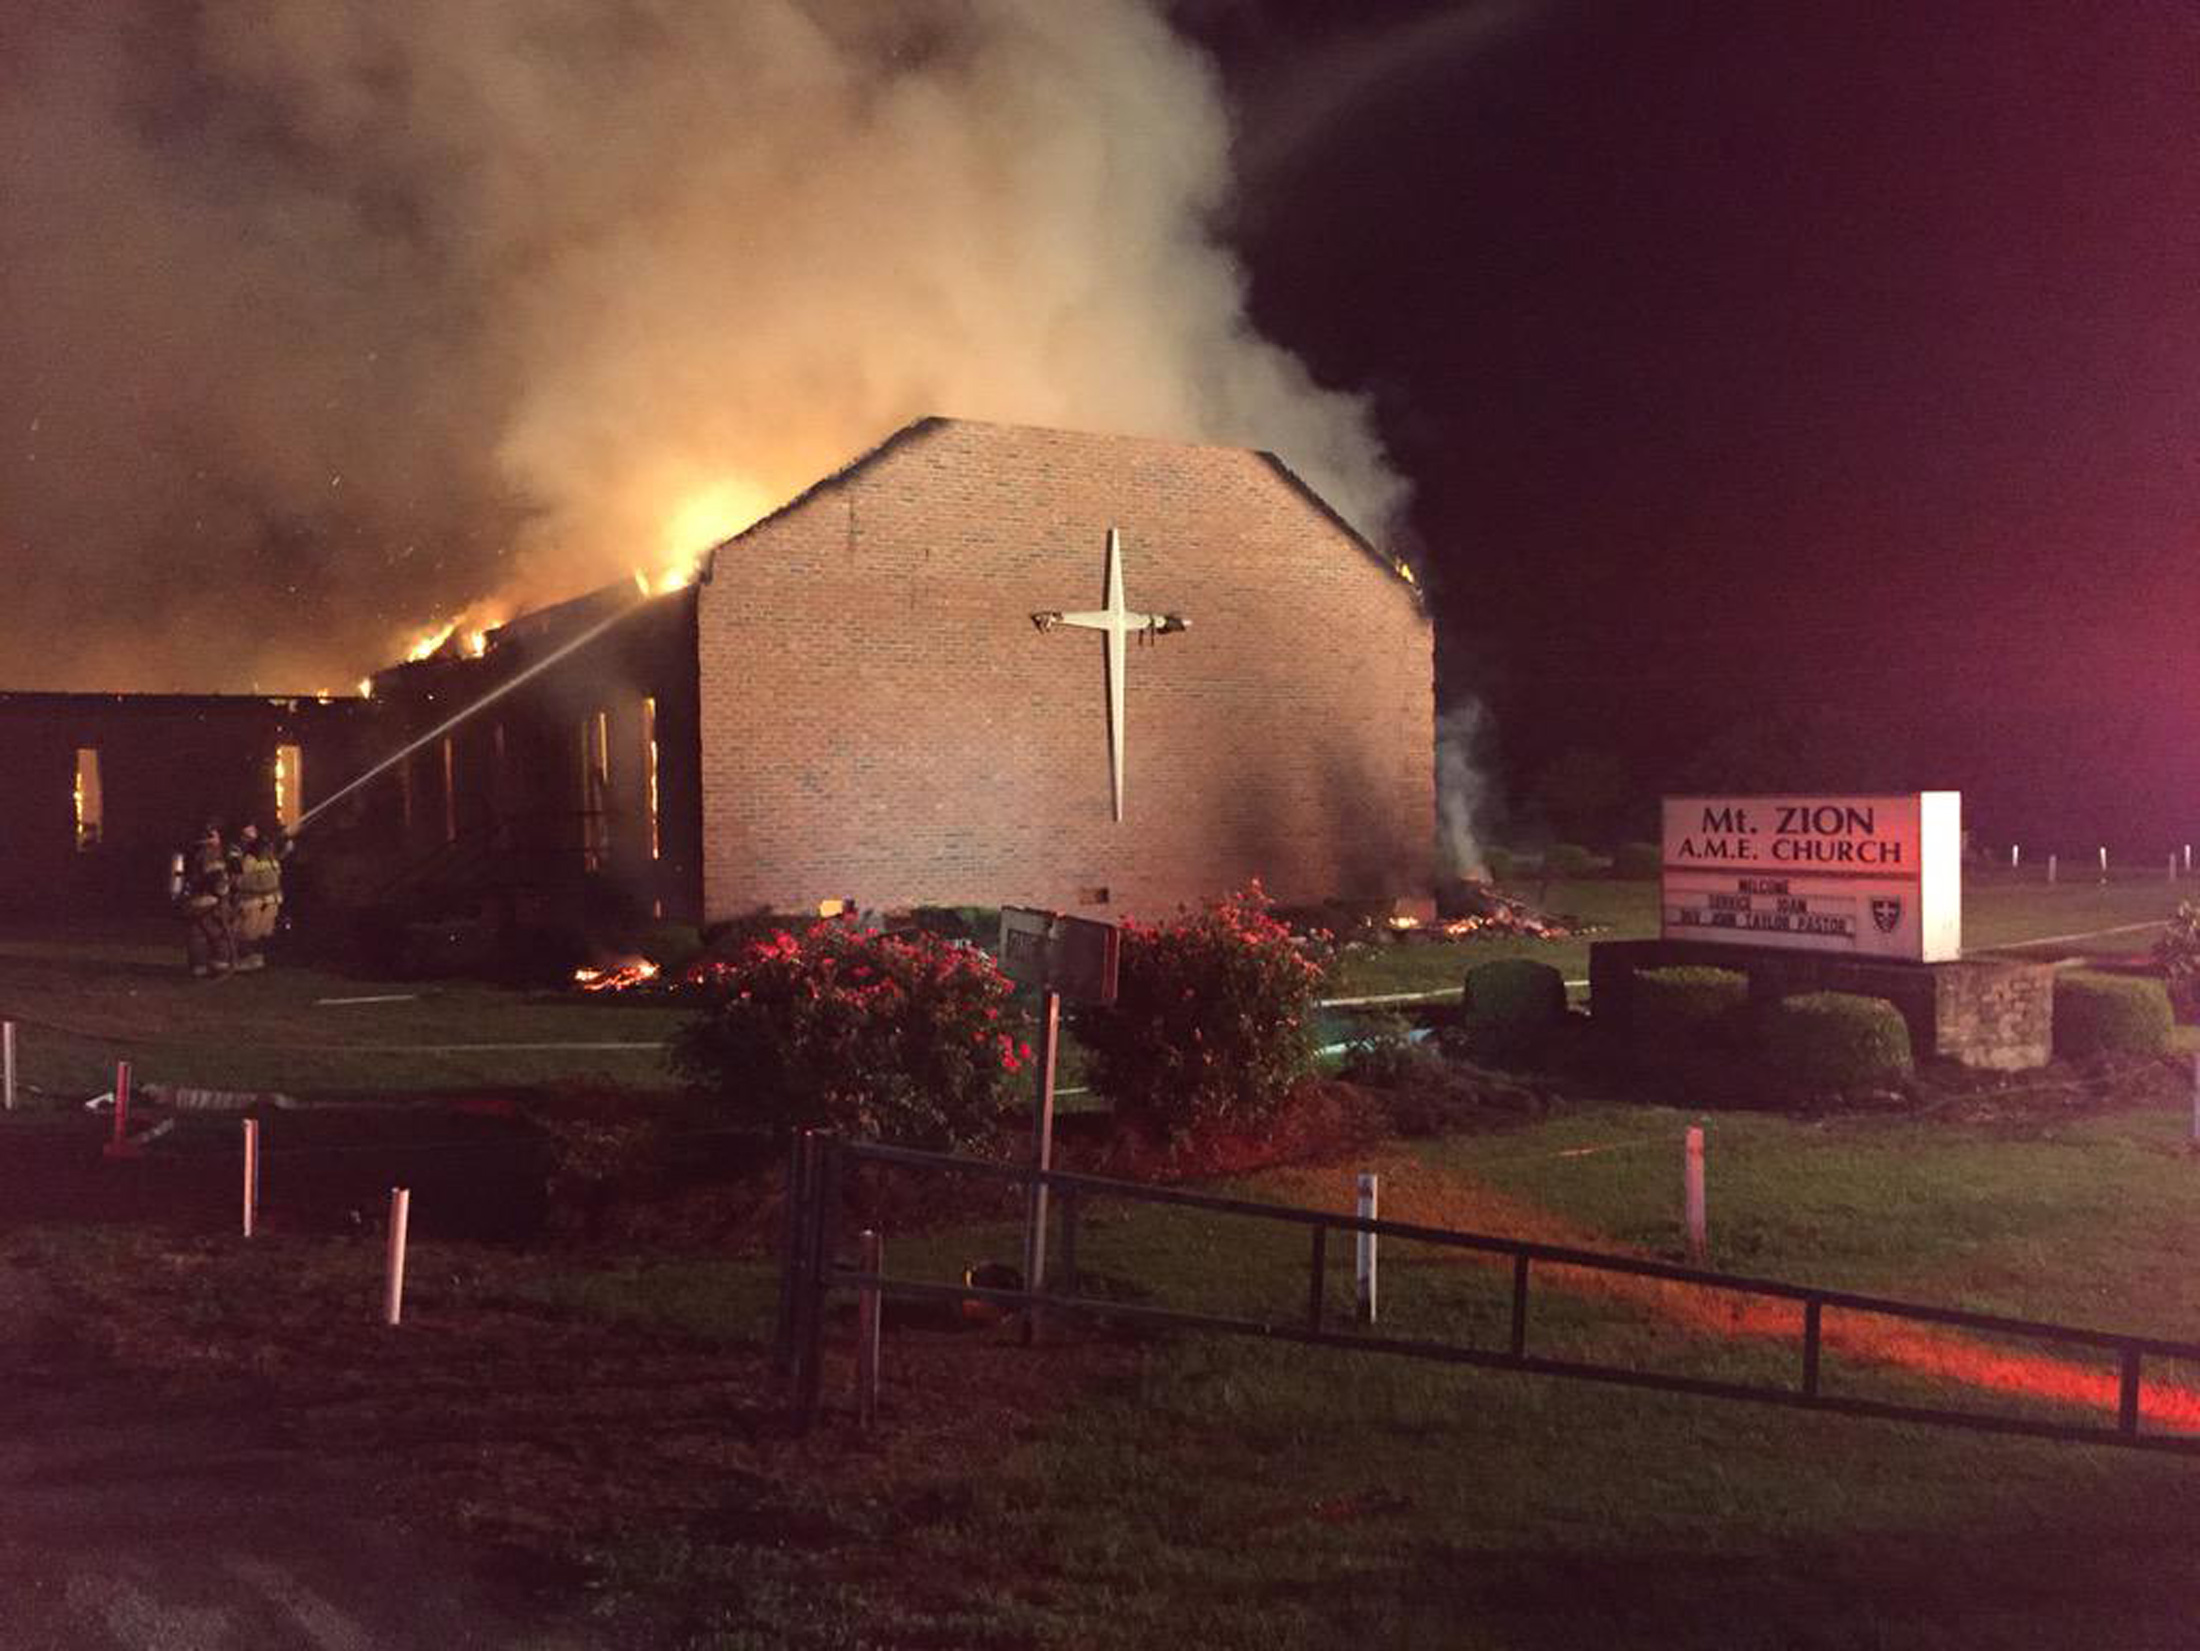 Fire crews try to control a blaze at the Mt. Zion African Methodist Episcopal Church in Greeleyville, South Carolina in this handout photo